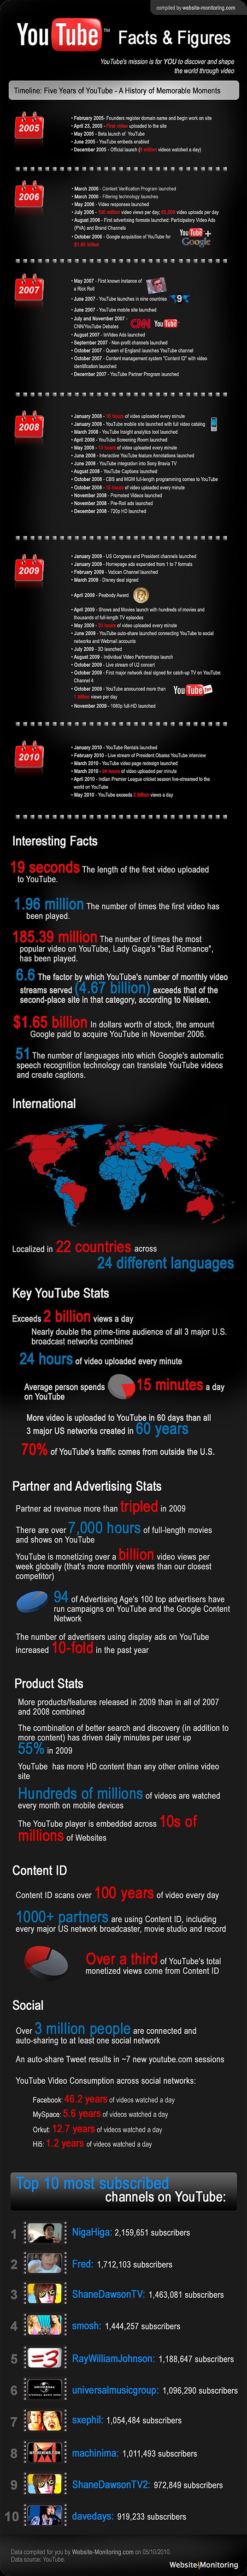 YouTube-Statistics-Facts-Figures